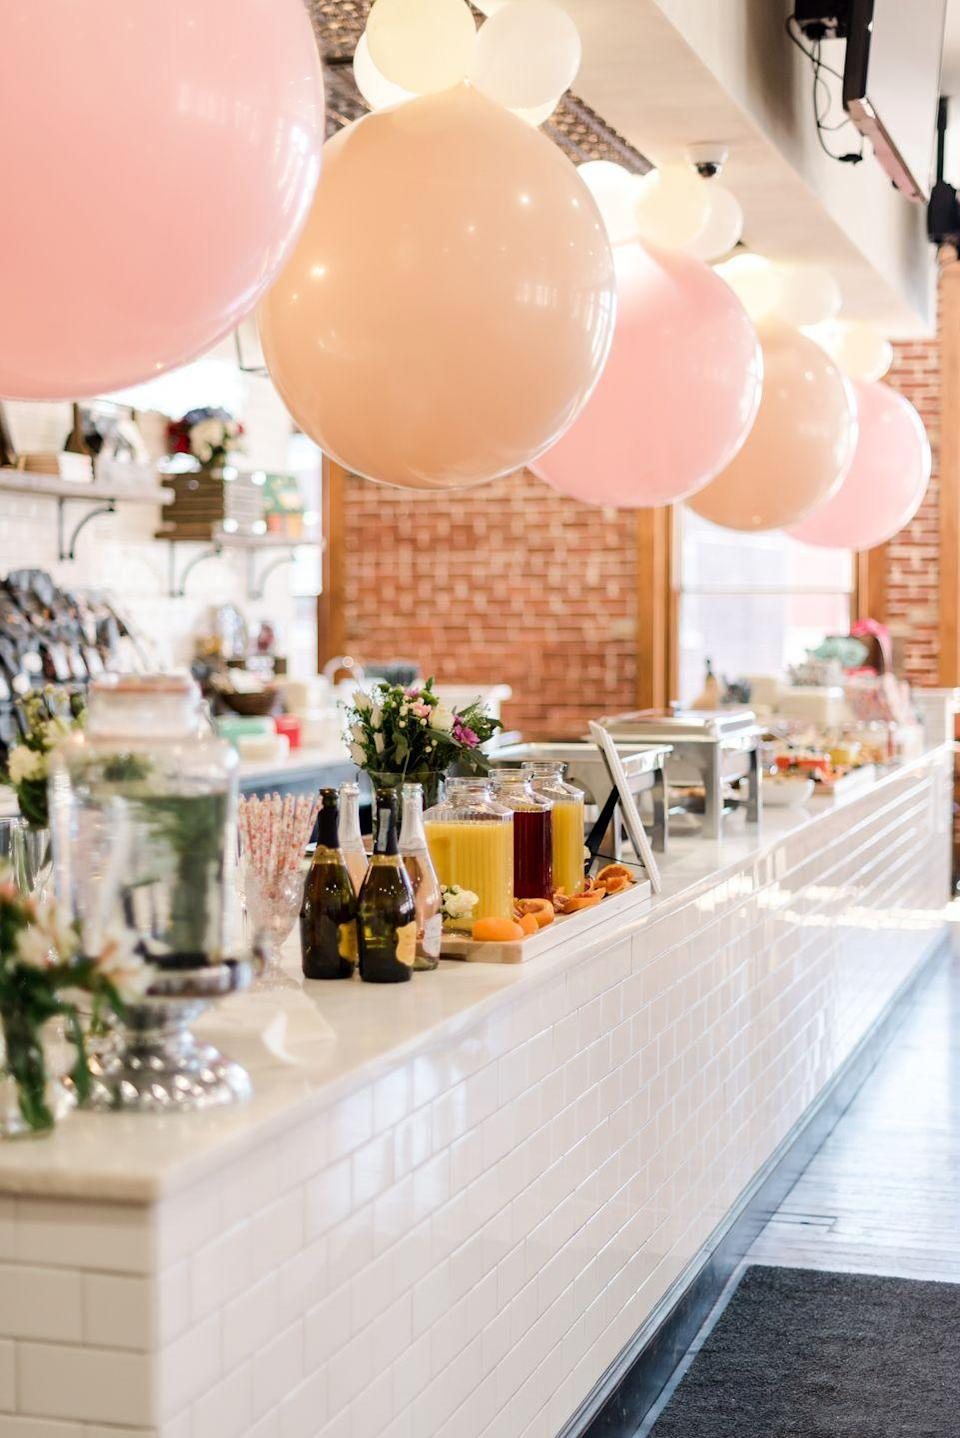 <p>The Merc Bakery had never looked so dreamy! (We should have a mimosa bar all the time.)</p>